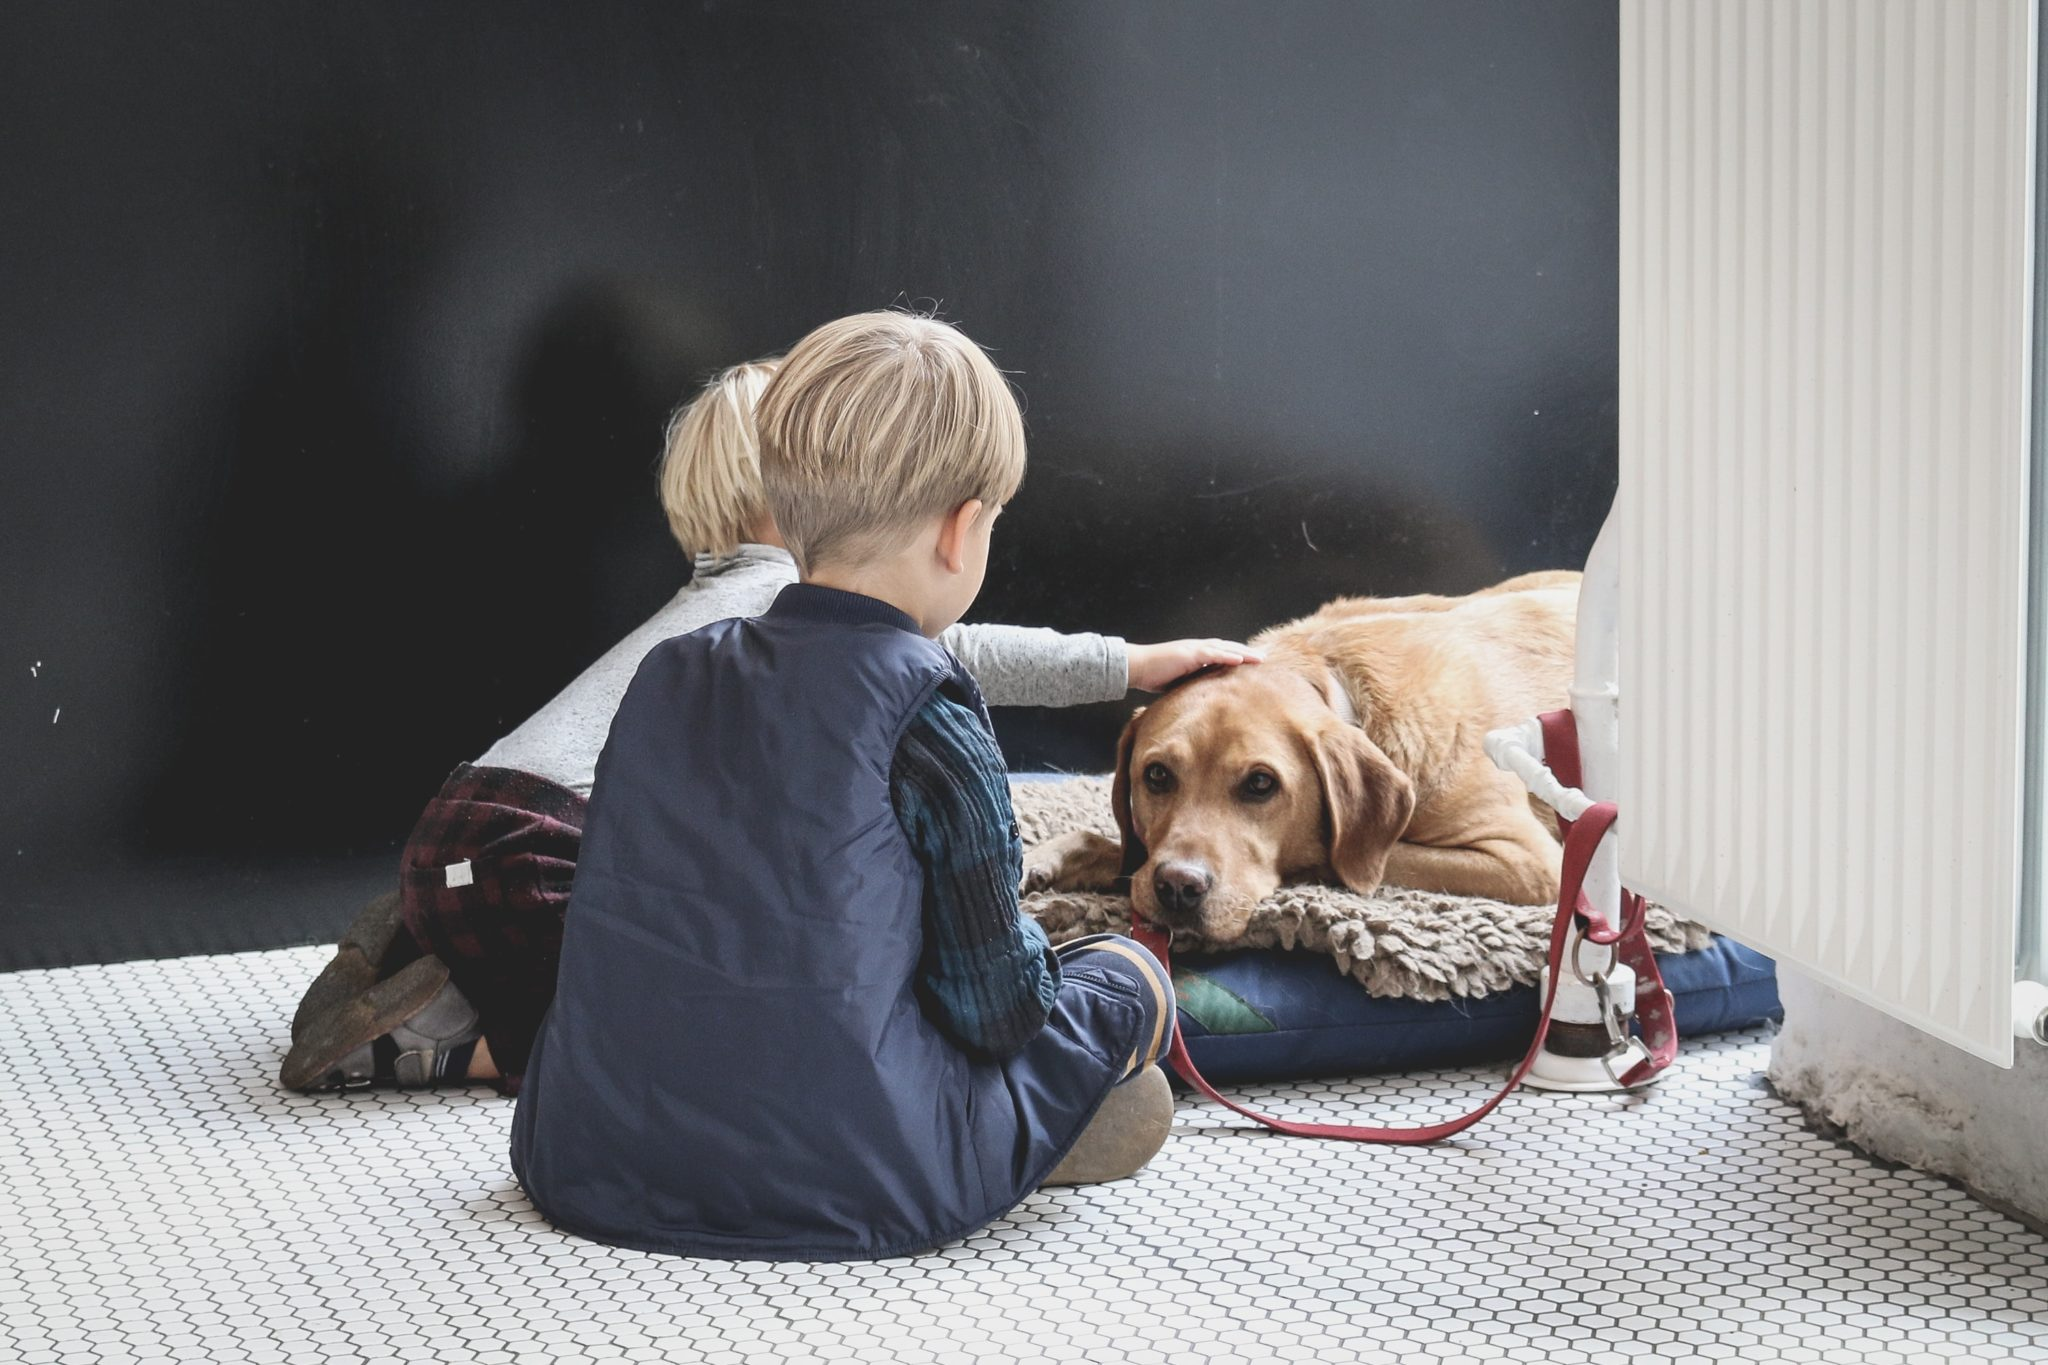 Two kids looking at a dog